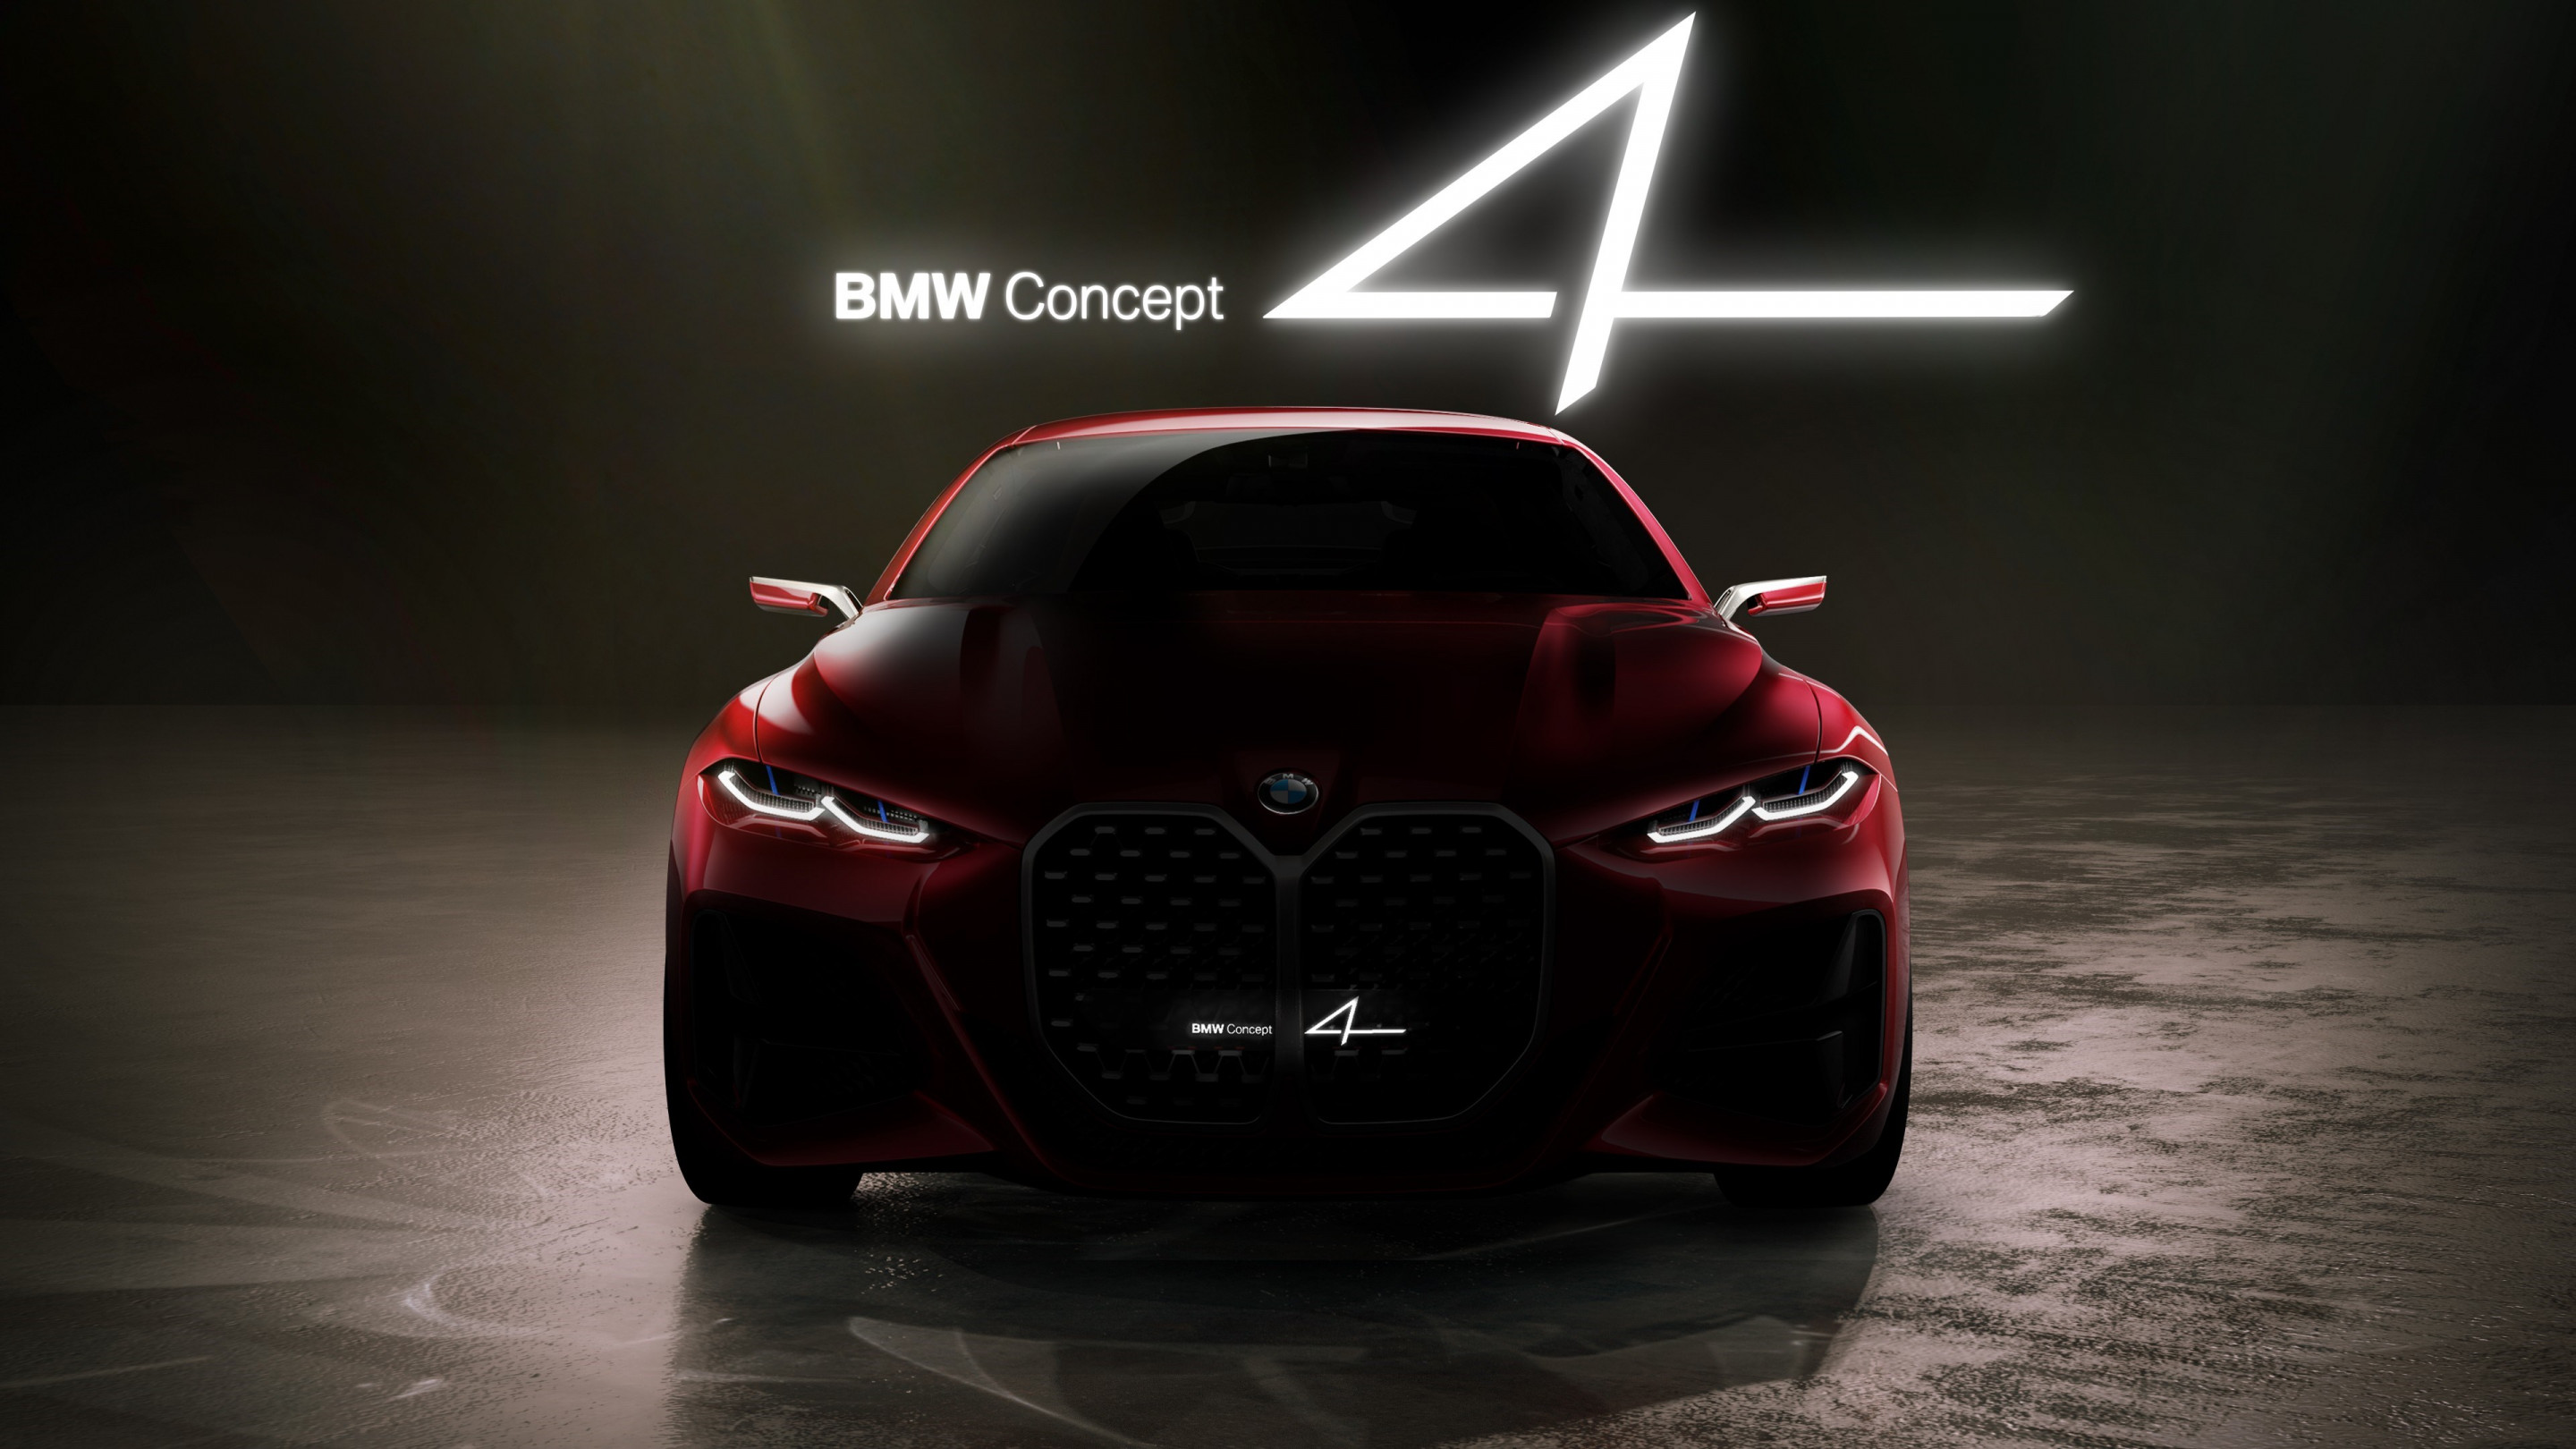 BMW Concept 4 wallpaper 2880x1620